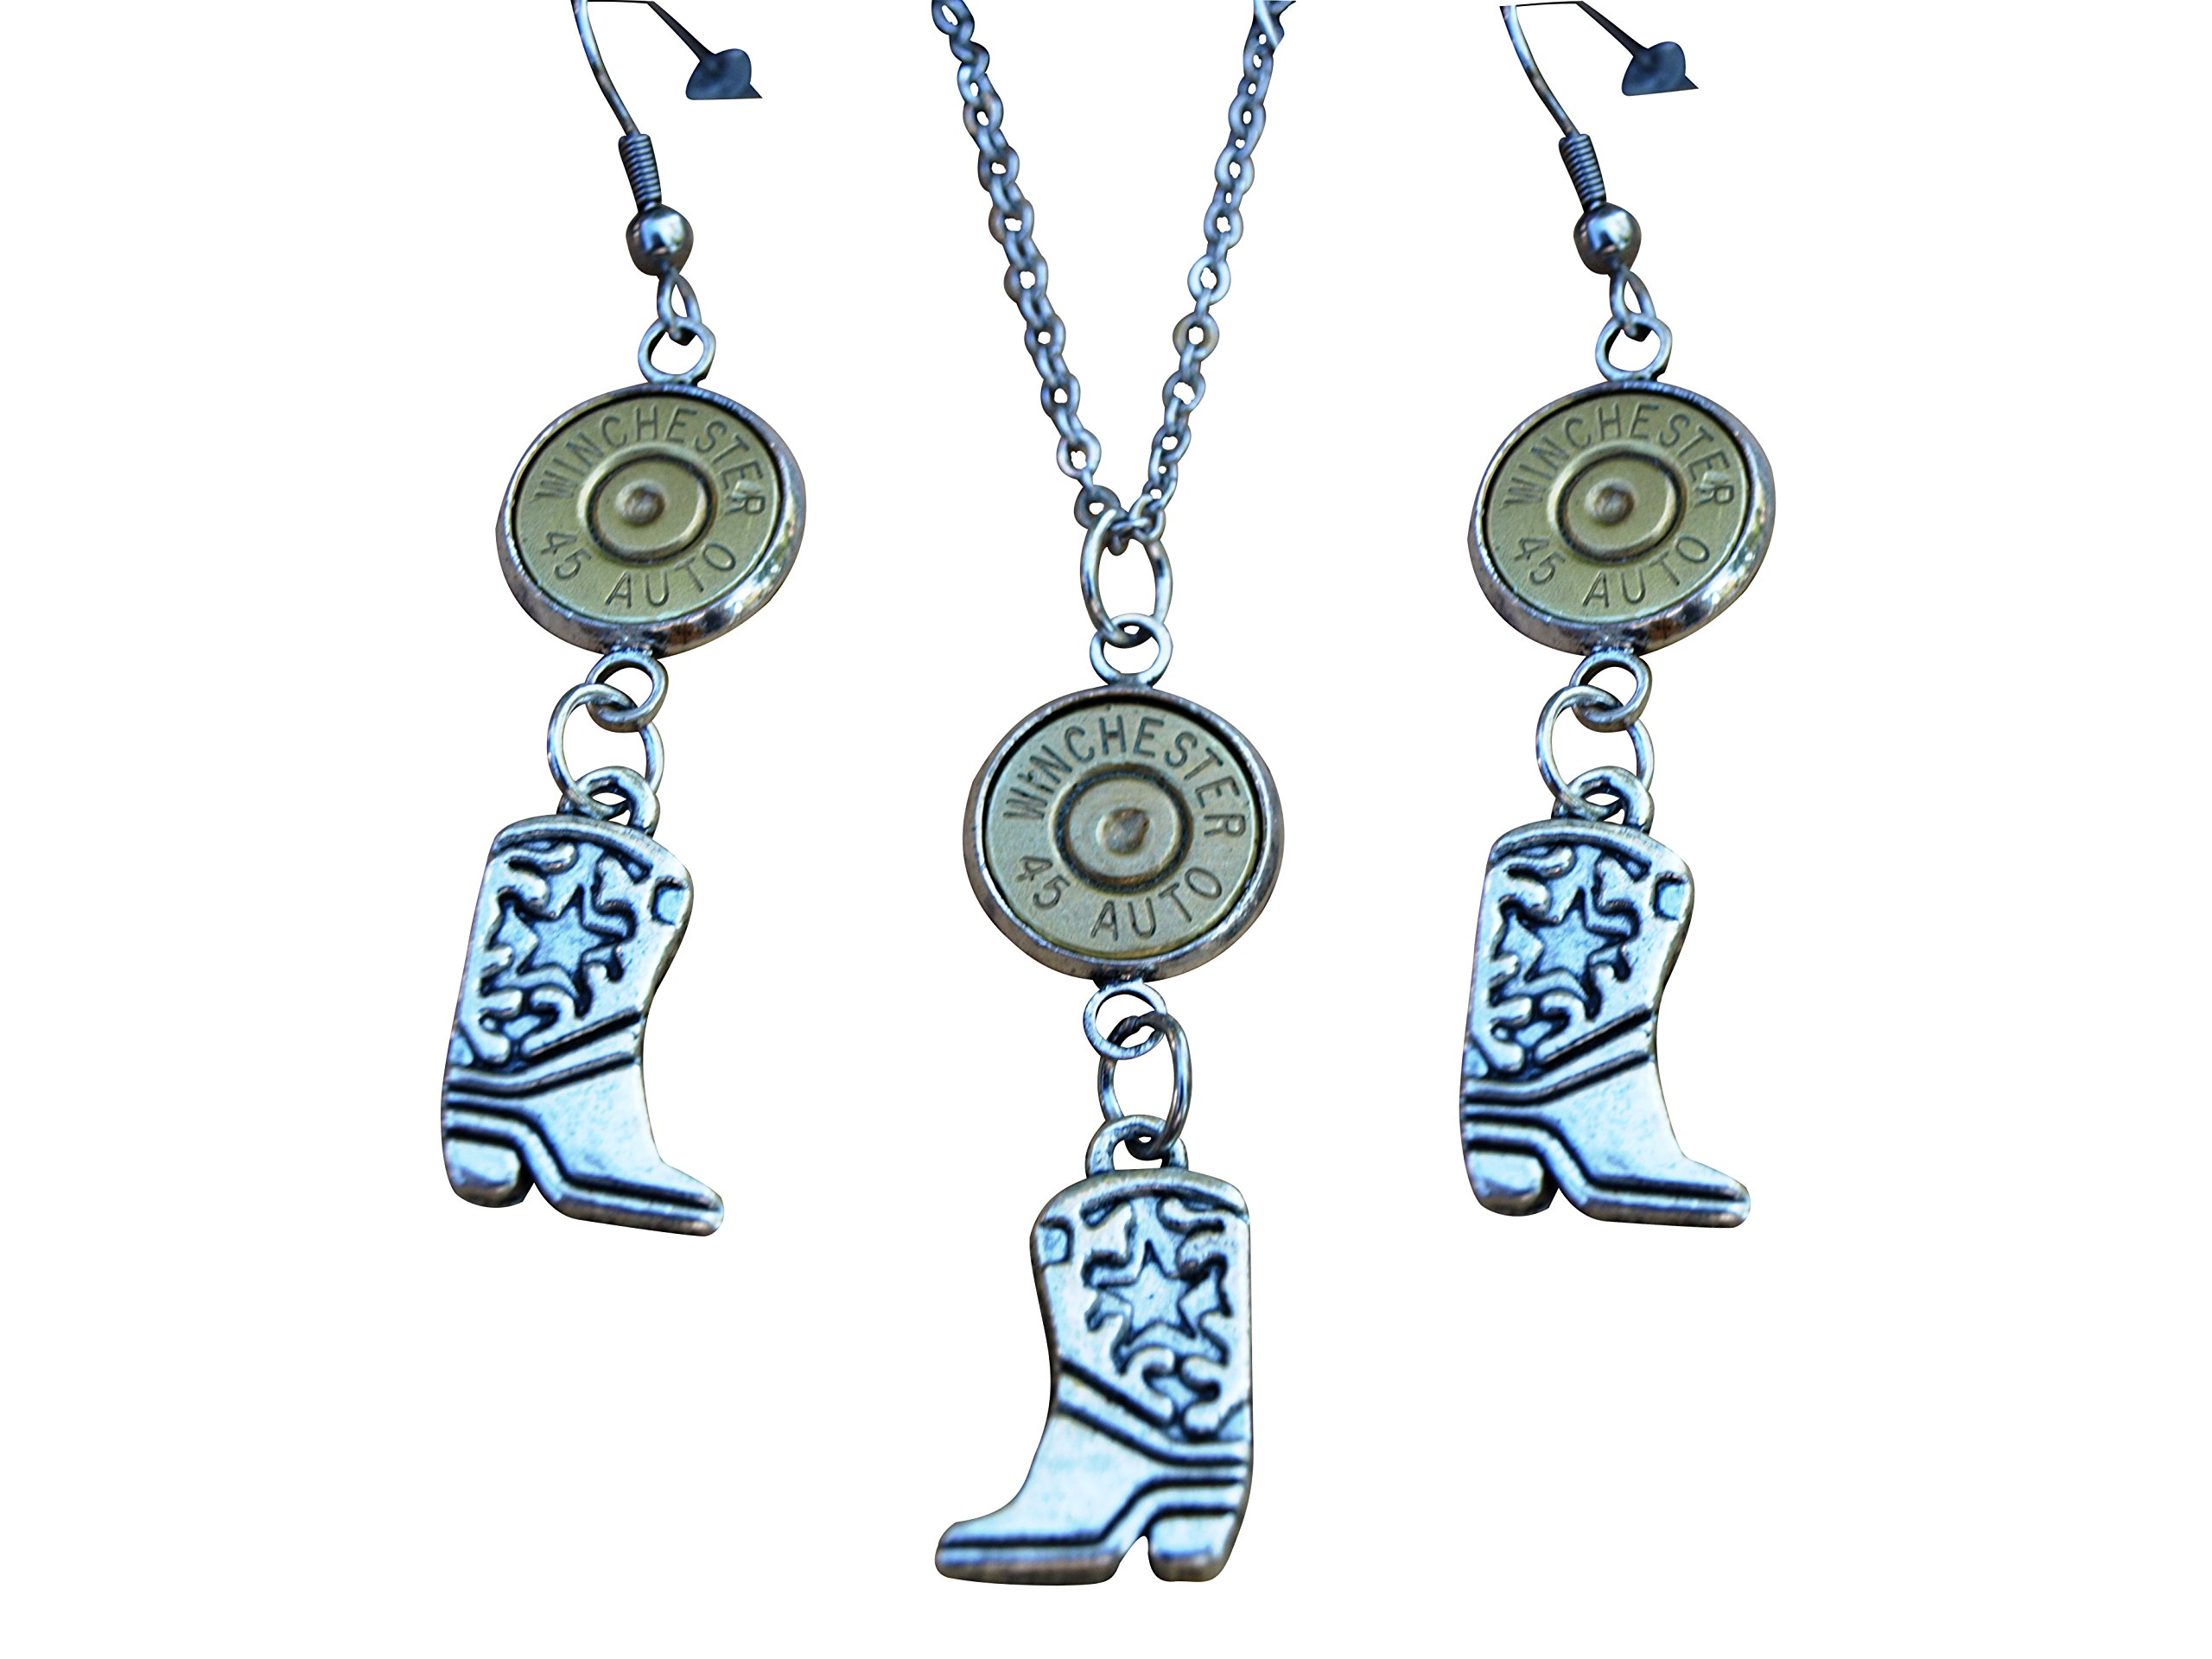 Bullet Necklace and Earrings with Cowboy Boot Charms and Brass 45 Caliber Bullet. S680